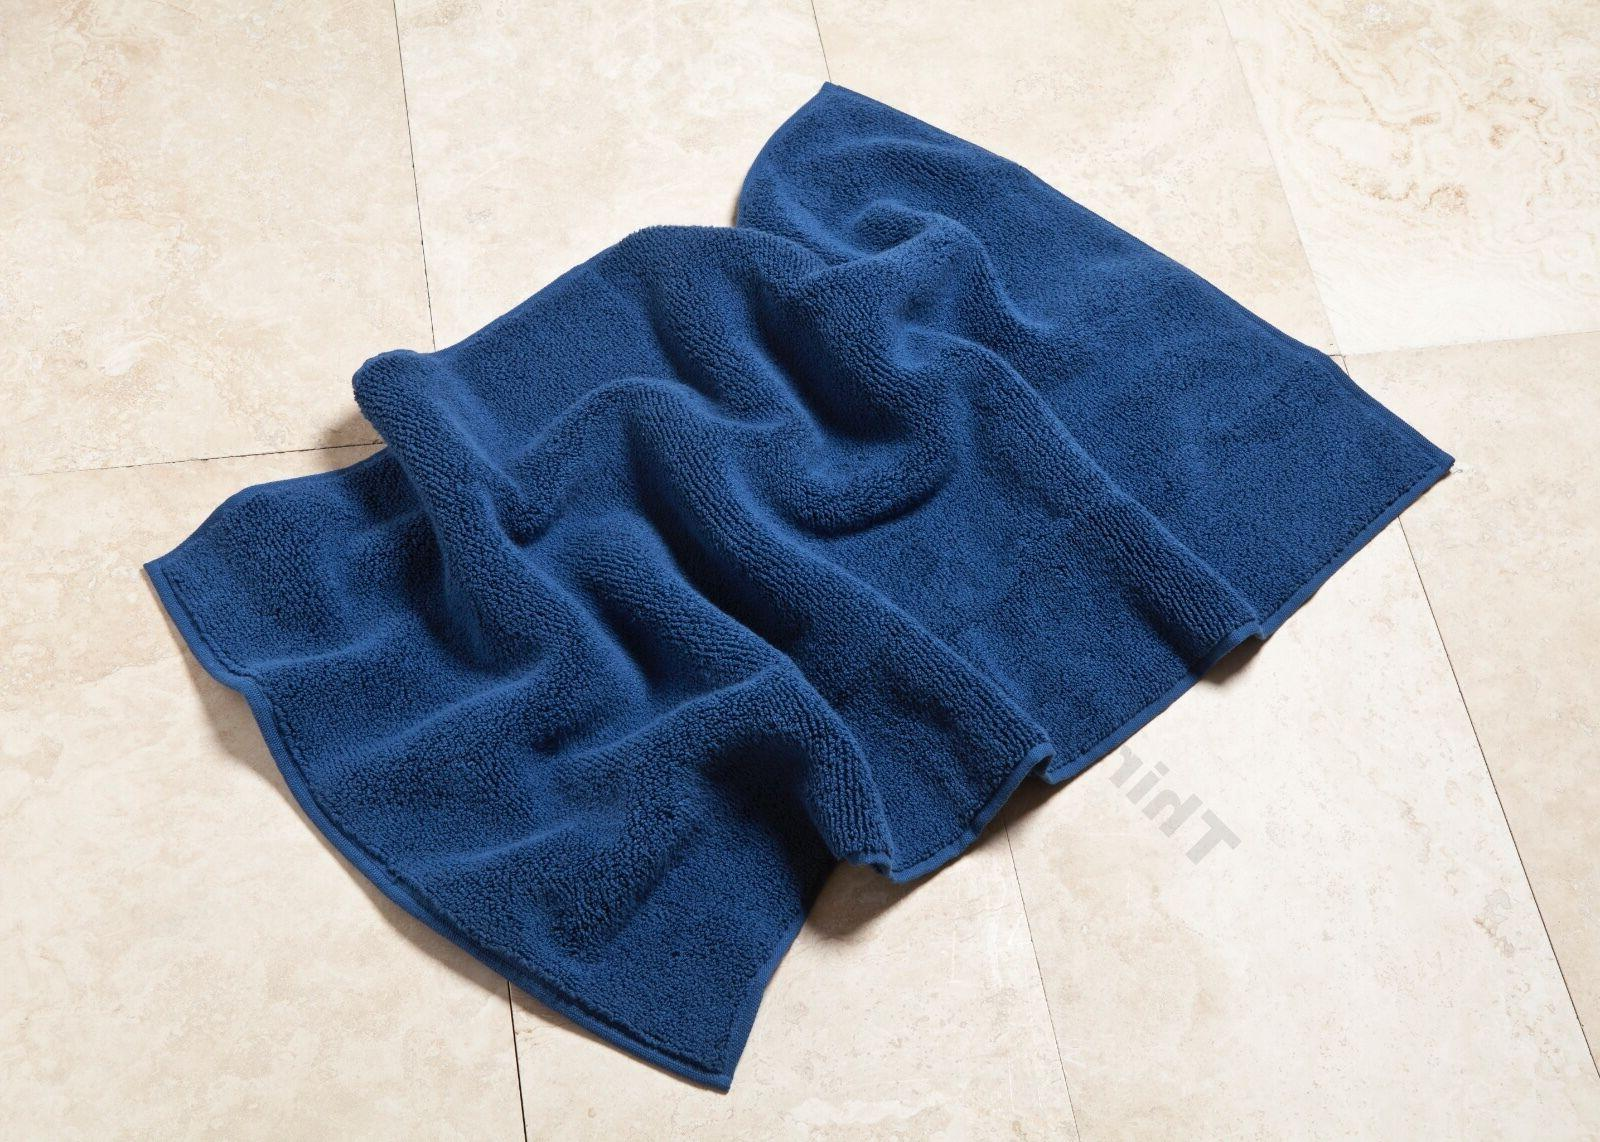 4-Pc Turkish Set,Thirsty® Towels 700 GSM -Complimentary Matching